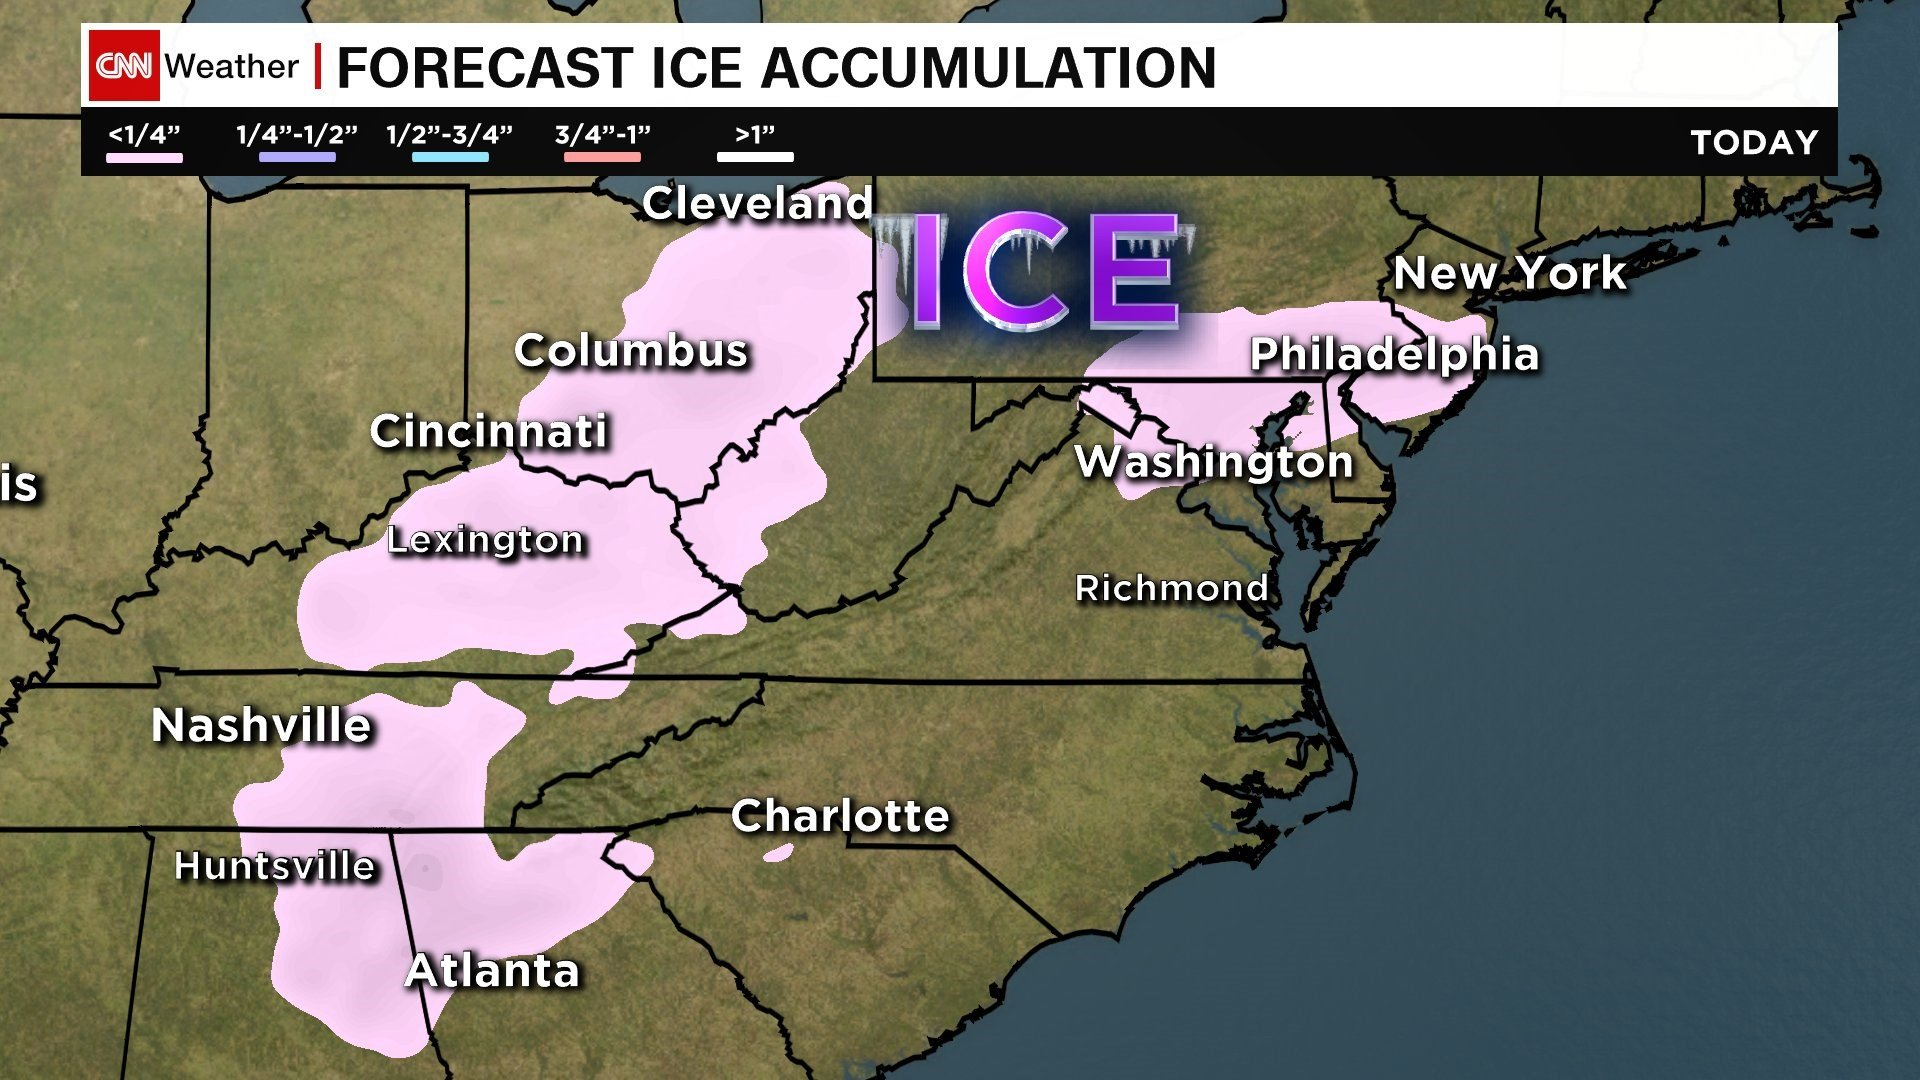 Chance of freezing rain Sunday night before warmer temps arrive